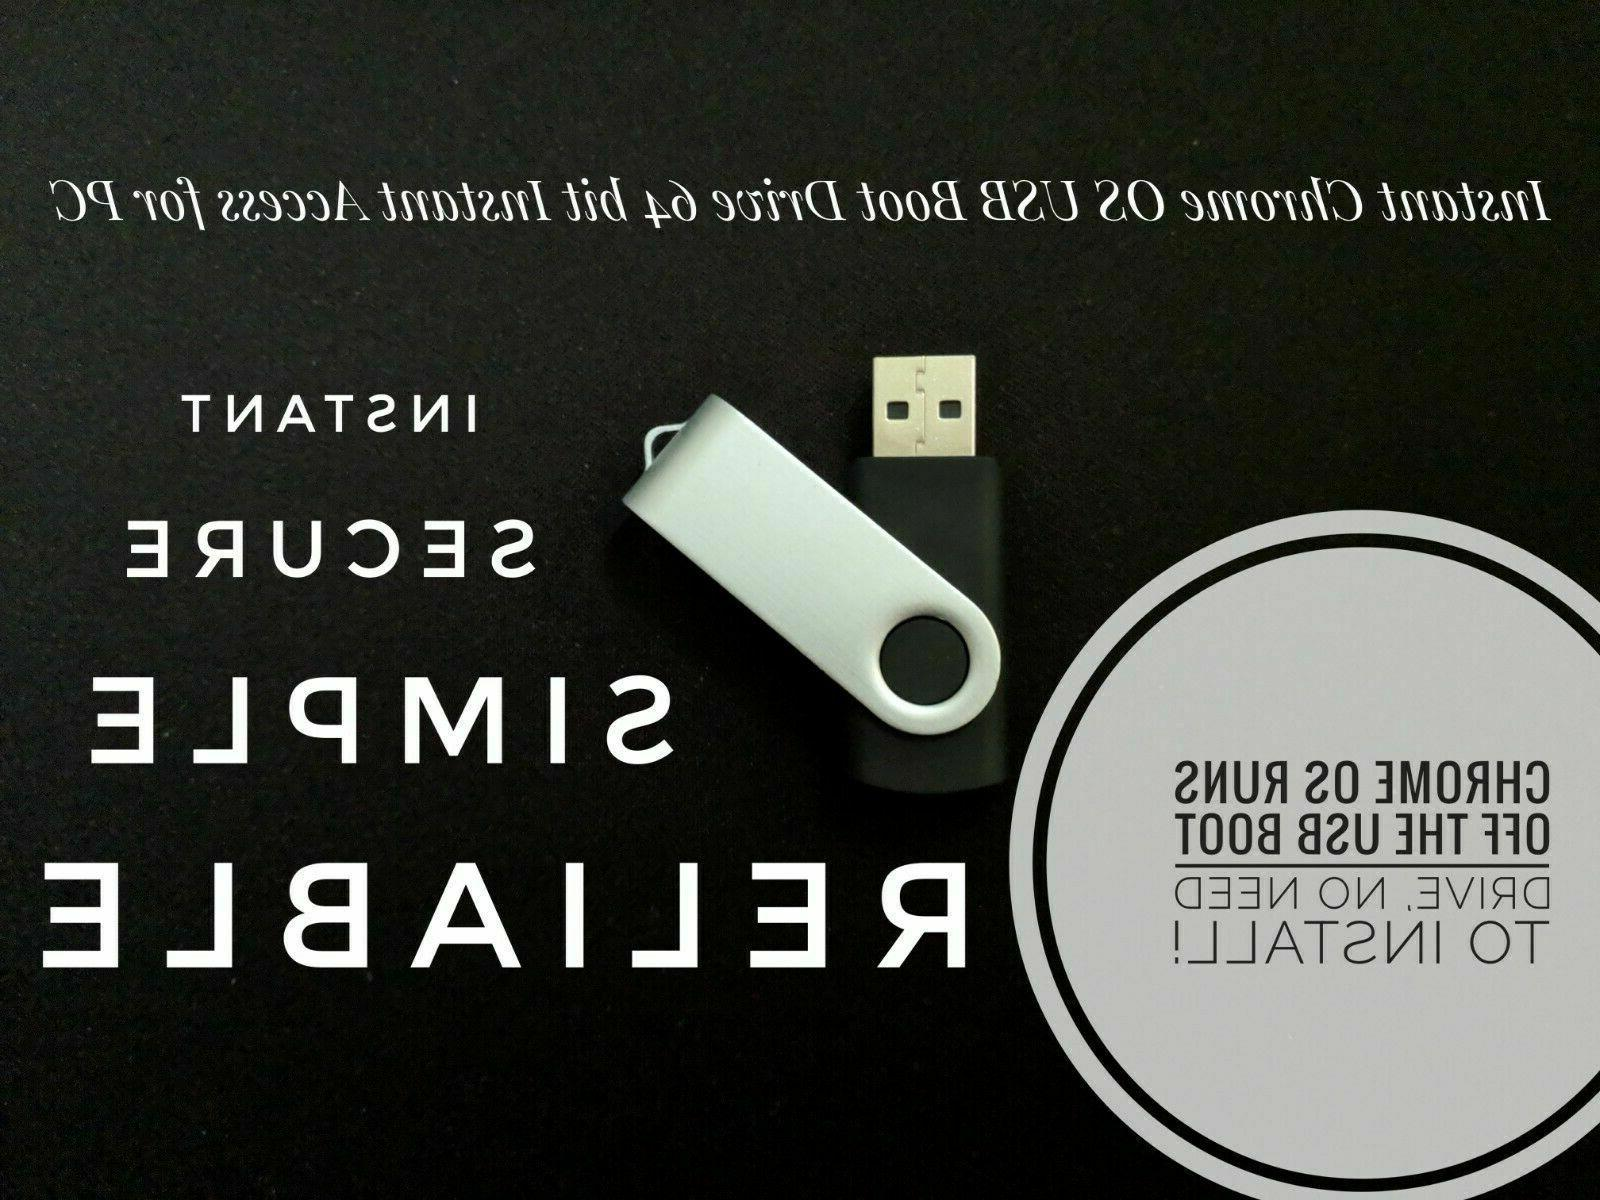 instant chrome os 8gb usb boot drive